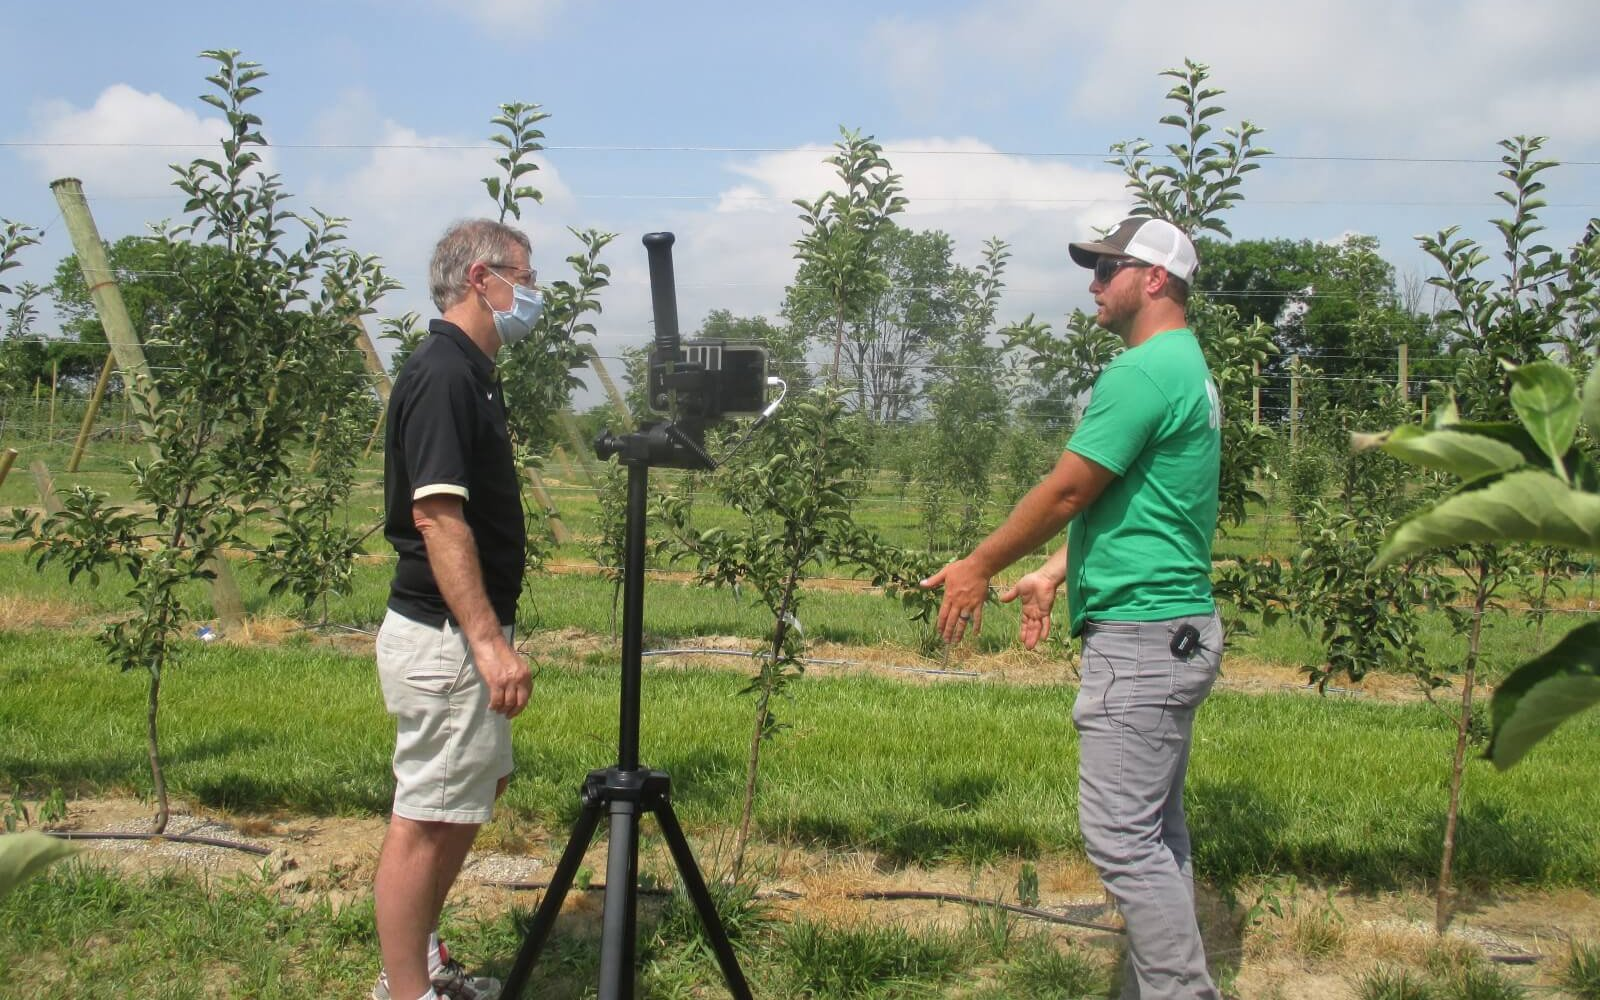 Peter Hirst, Purdue Extension fruit specialist, speaks with Calvin Beasley, owner of Beasley's Orchard, during filming of the virtual fruit and vegetable field day.